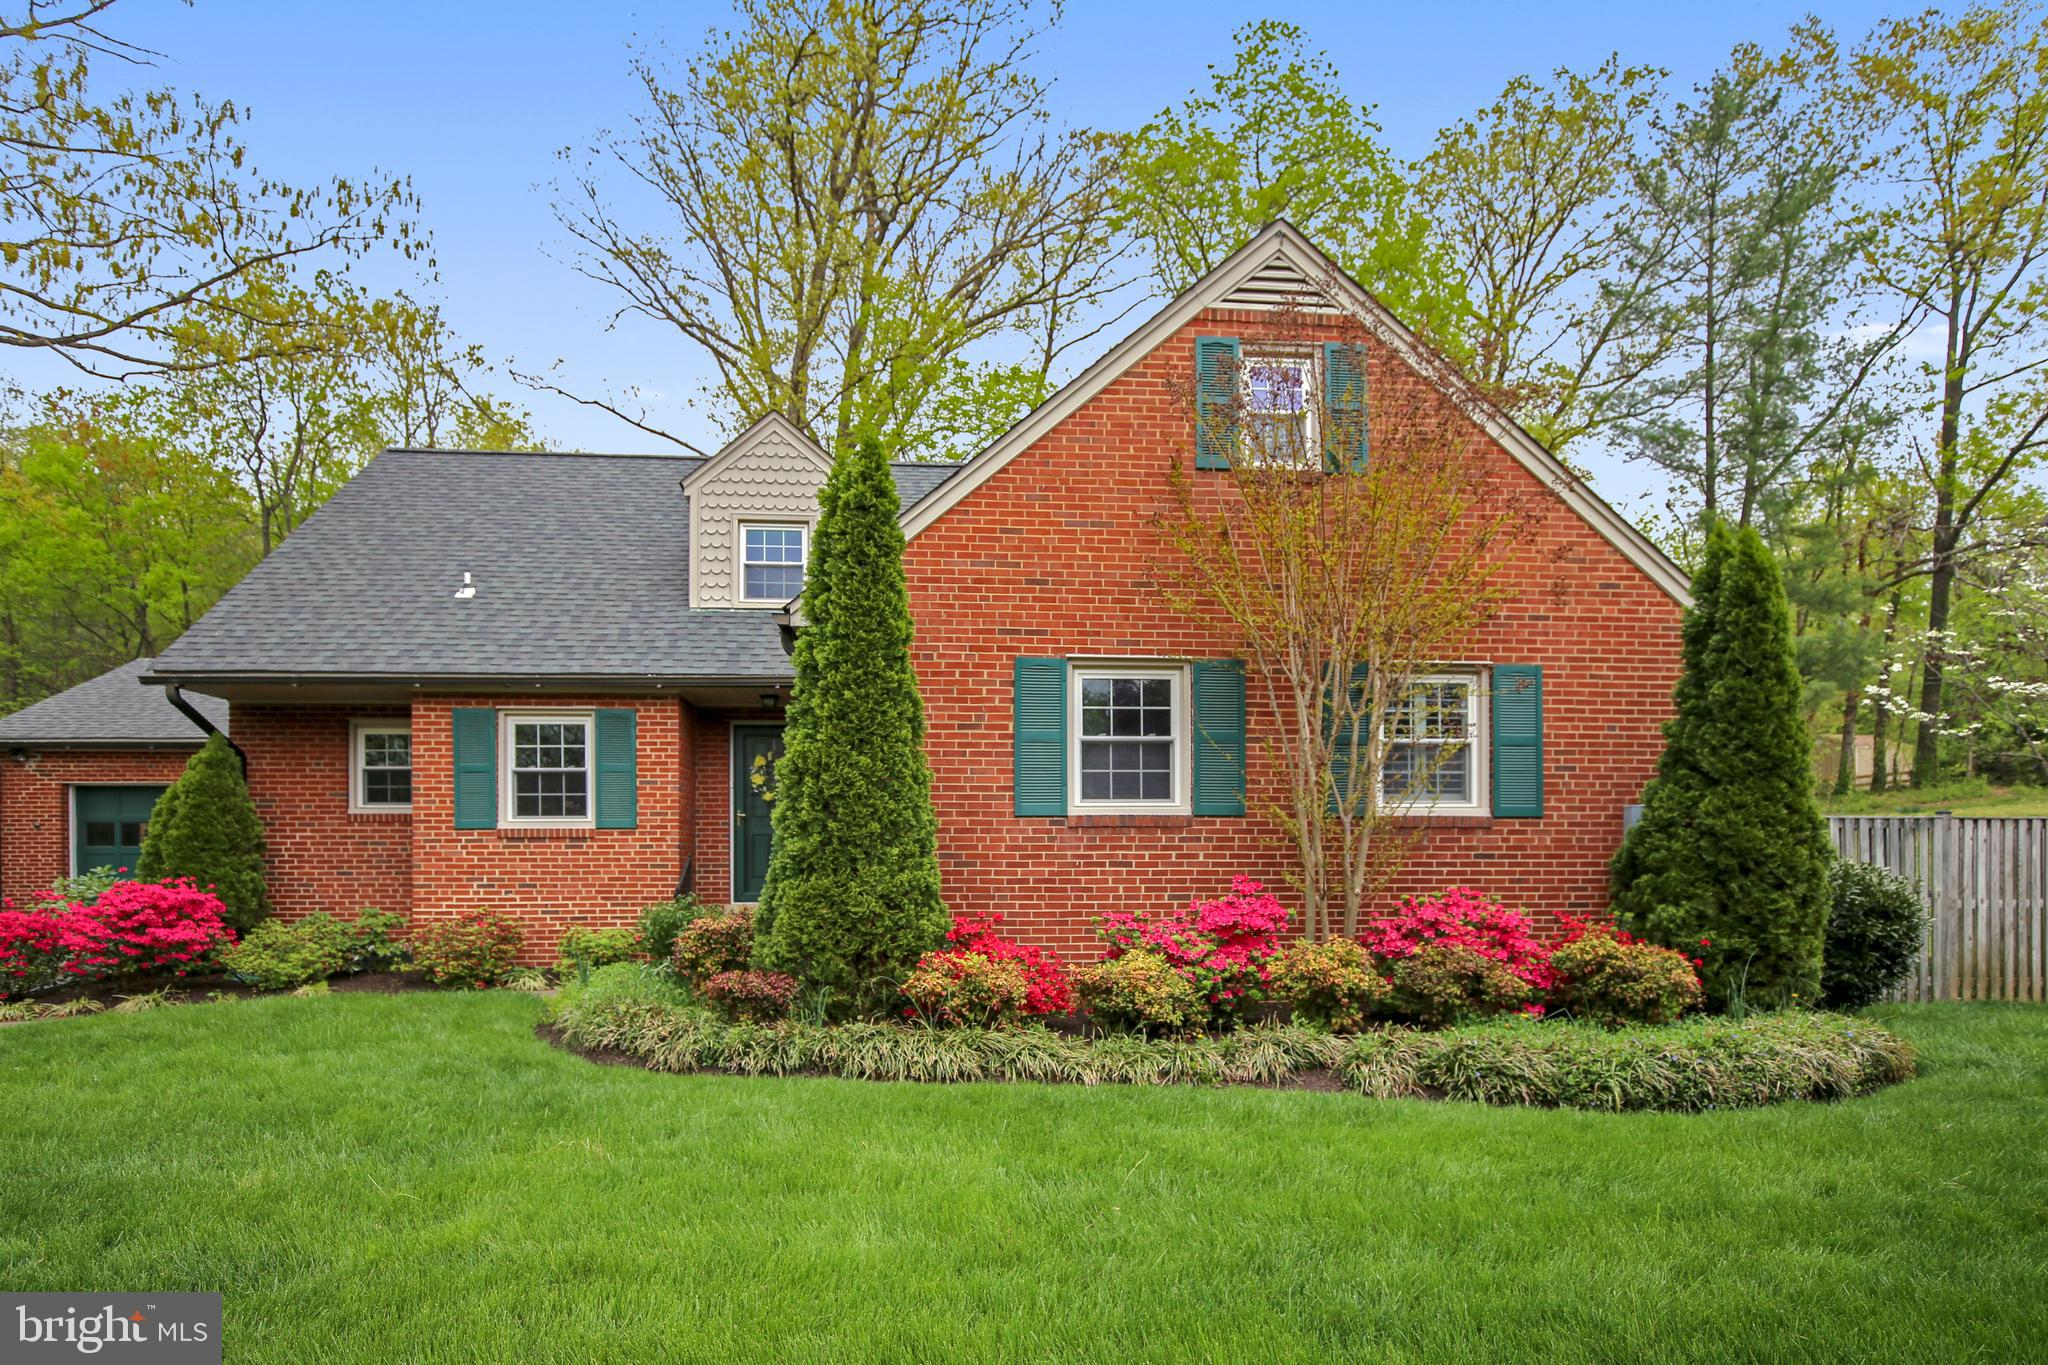 OPEN HOUSE, SUNDAY, JUNE 16, 2-4 P.M.  GORGEOUS HOME.OPEN HOUSE, SUNDAY, JUNE 16, 2-4 P.M.  GORGEOUS HOME.  3 Levels =3672 Square Feet plus a Salarium This is a large home!!! Looking at this home from the road is deceiving.  It is an all brick 5 bedroom, 3.5 bath, over-sized two-car garage custom-built home by Crane in historic Wilton Woods on a large private lot,.3596 acres, backing to the trees. Gorgeous professionally landscaped front and backyard including a patio and shed. Enclosed light-filled, year-round solarium facing the backyard. New upgrades include:  water heater, roof, paint, sump pump, HVAC on Lower Level, Main and Upper Levels, kitchen with granite counters,  The living room is richly paneled with a fireplace with an electric insert,  Recessed lighting. The basement is fully finished with a half-bath, and it is a walk-up.  Sprinkler System. Minutes to Huntington, King Street and Braddock Metros, Old Town, Reagan National Airport, and DC..